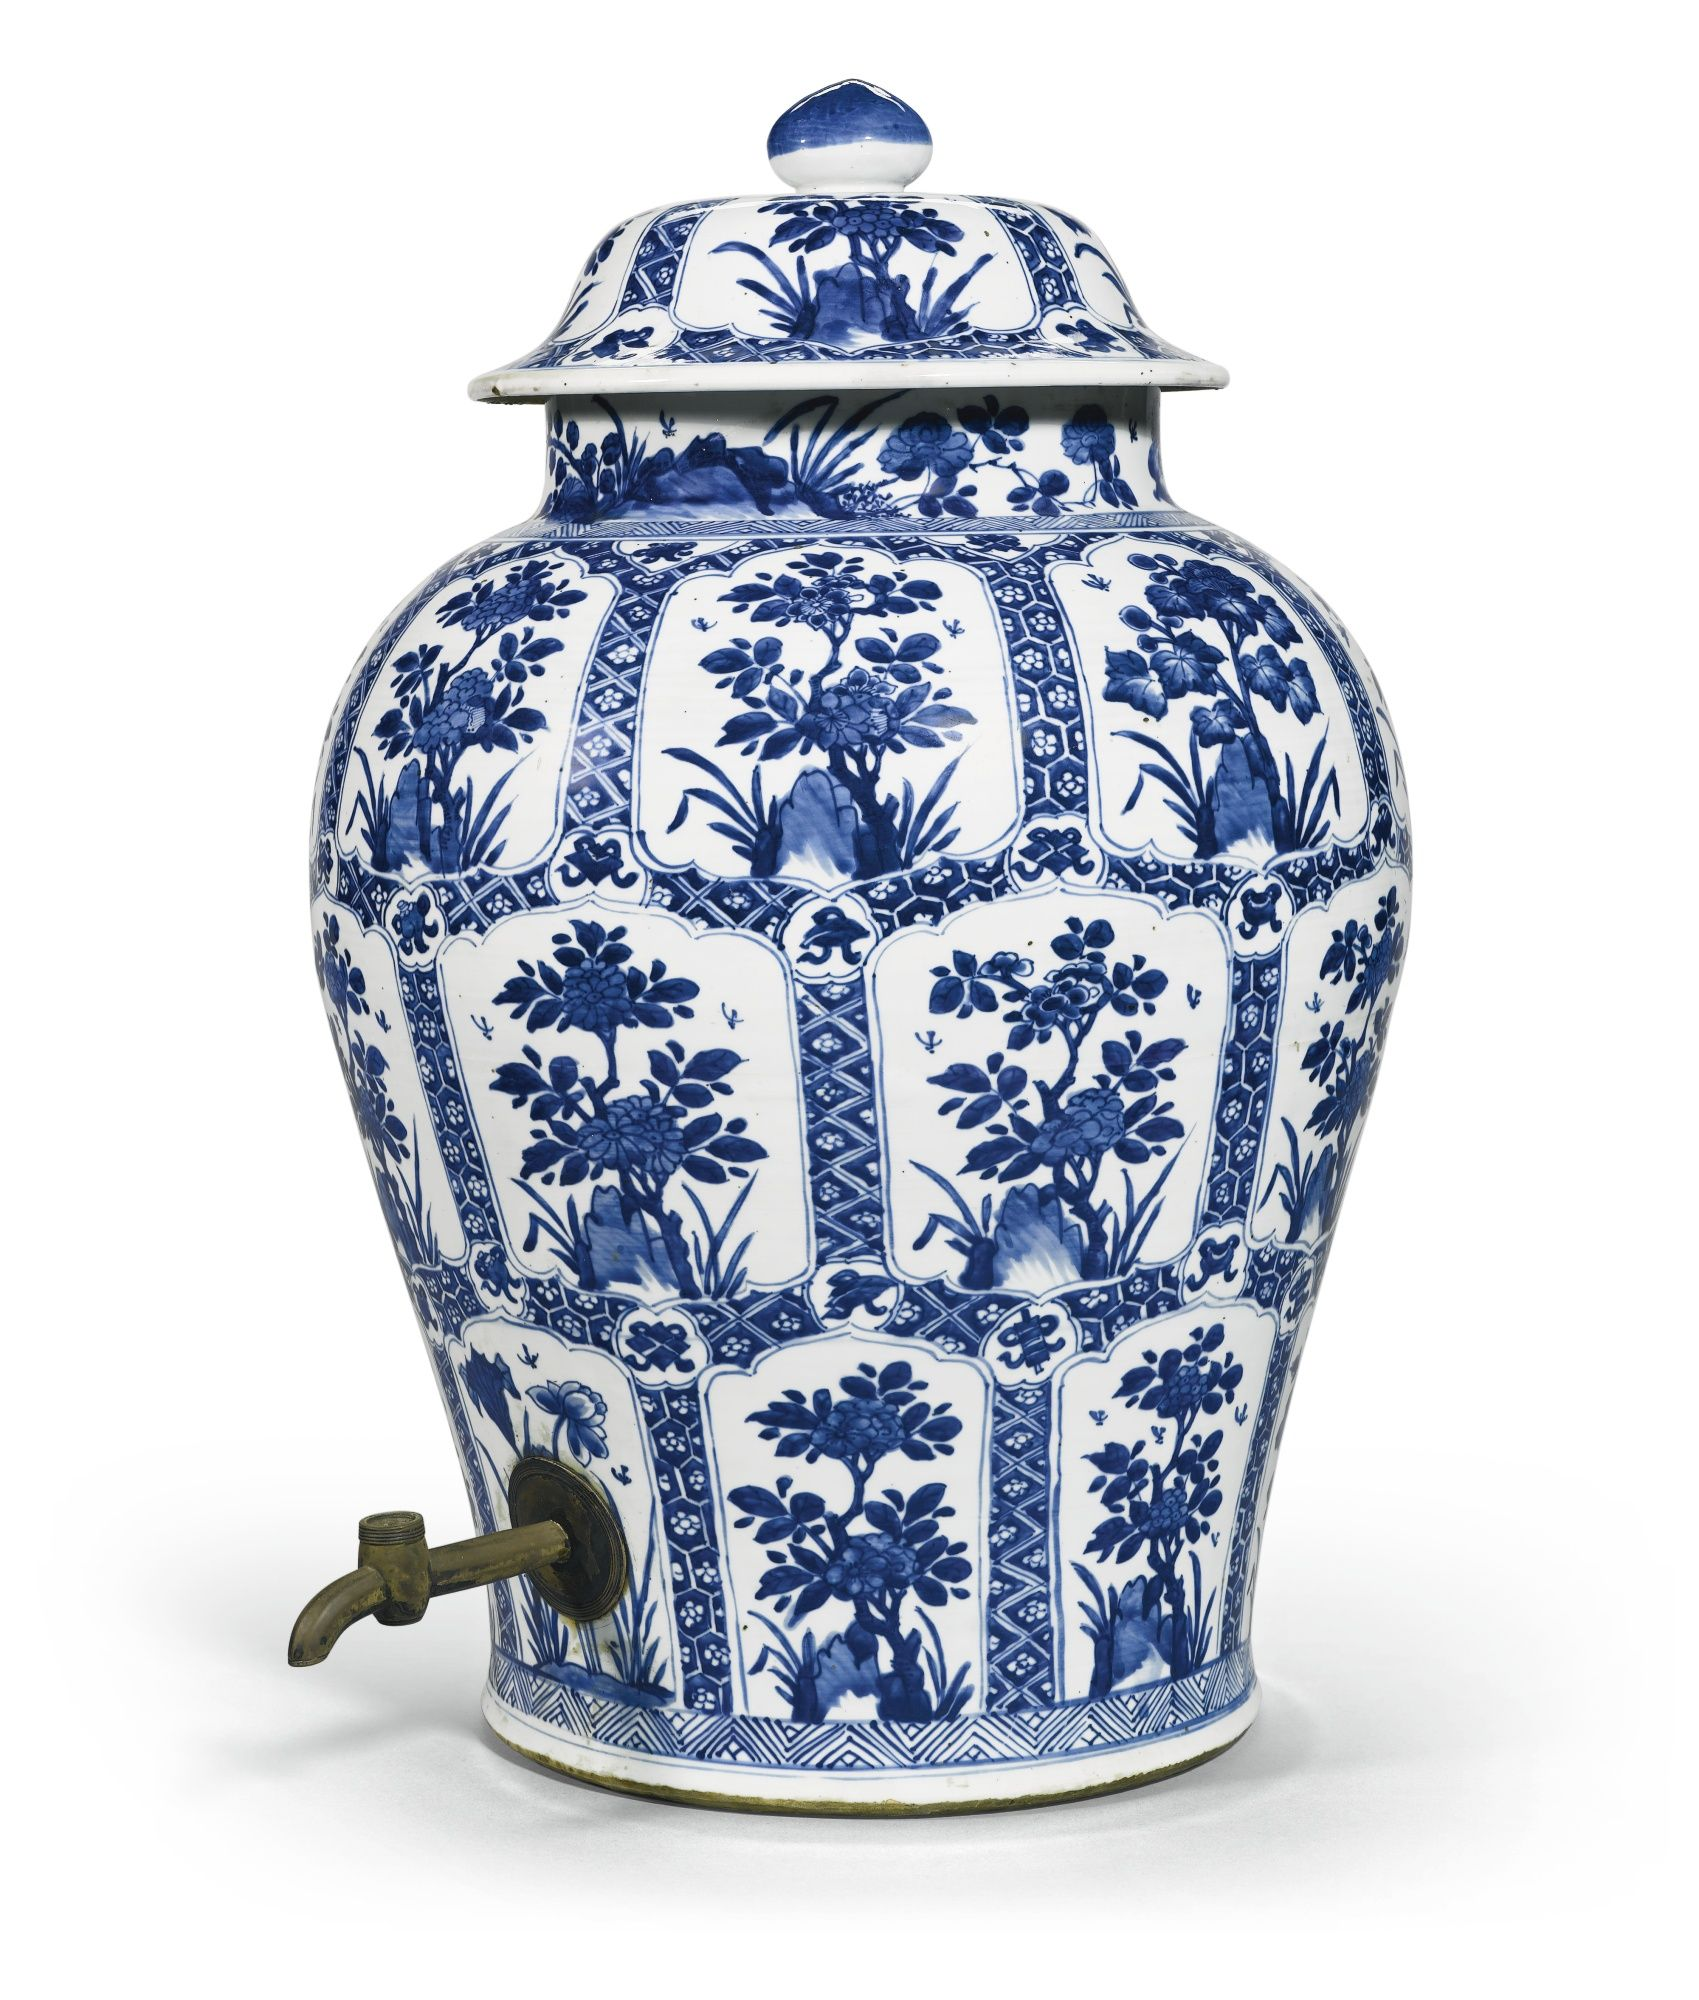 BLUE AND WHITE 'FLORAL' JAR AND COVER QING DYNASTY, KANGXI PERIOD the baluster body painted with three rows of petal-shaped floral panels, all reserved on diaper grounds interspersed with small cartouches enclosing the babao (Eight Treasures), the foot and the shoulder encircled with chevron bands, the neck with flowers issuing from rocks, mounted with a metal tap, the domed cover similarly decorated Quantity: 2 56.5cm., 22 1/4 in.